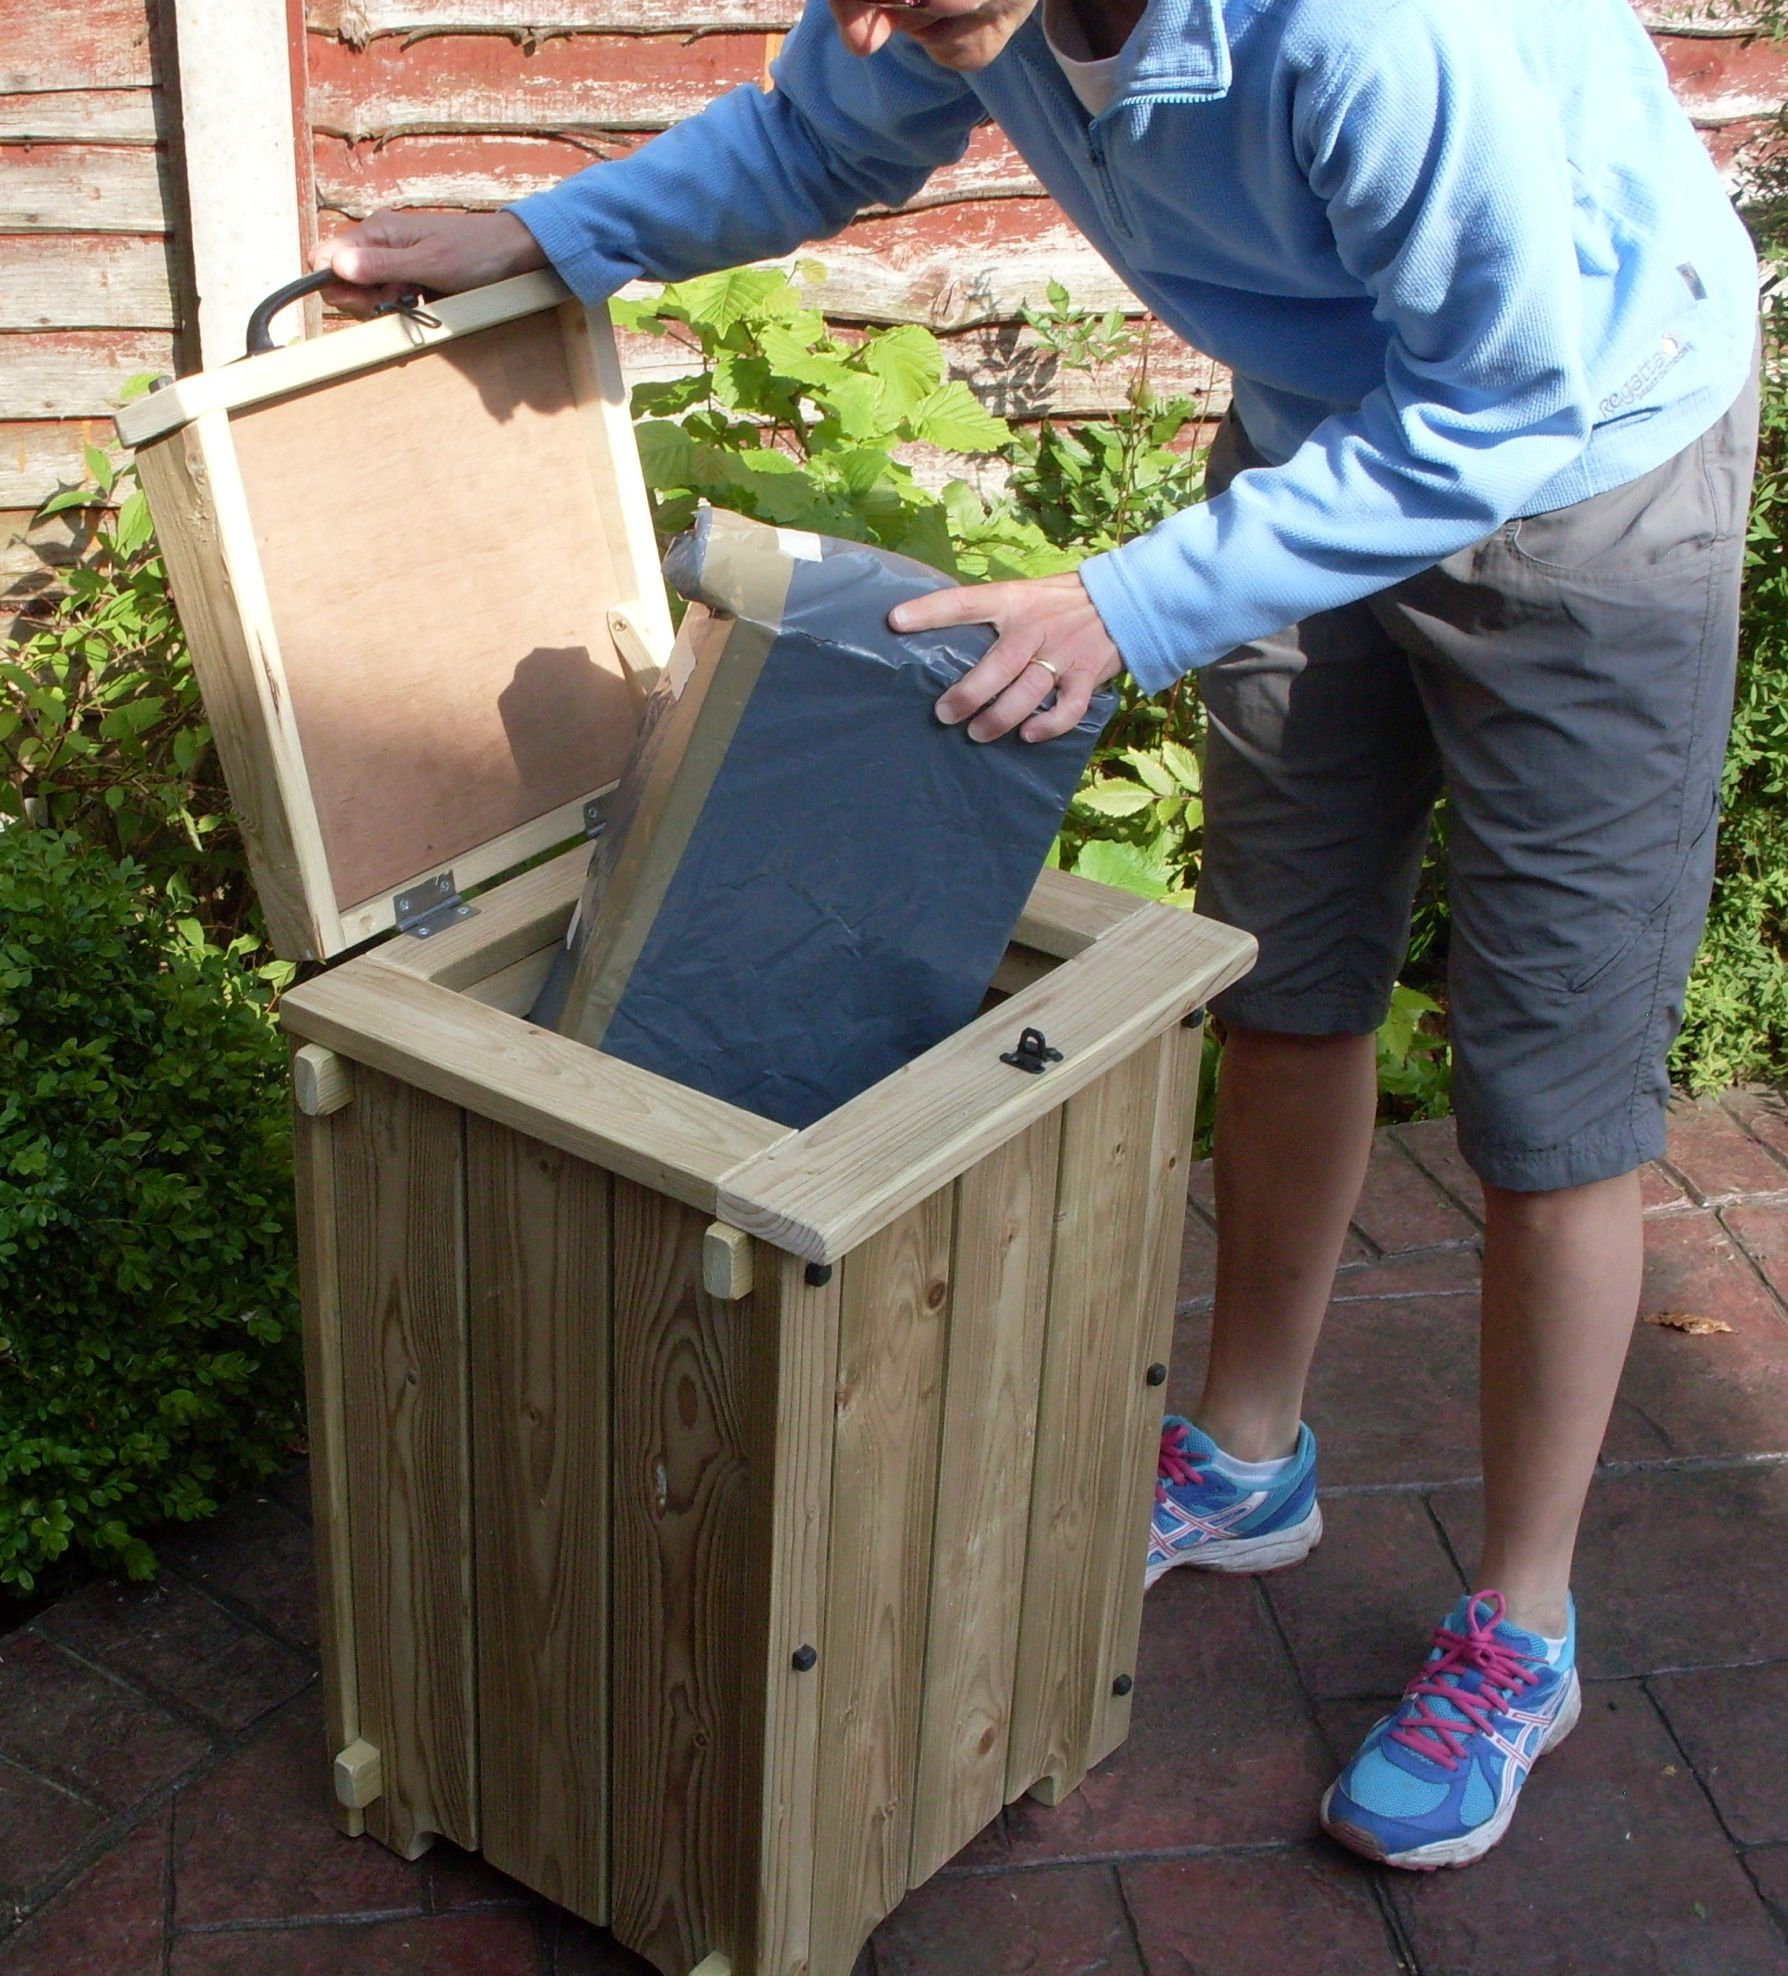 Home Delivery Furniture: Parcel Drop Box For When You Are Out. Facebook. KH Garden